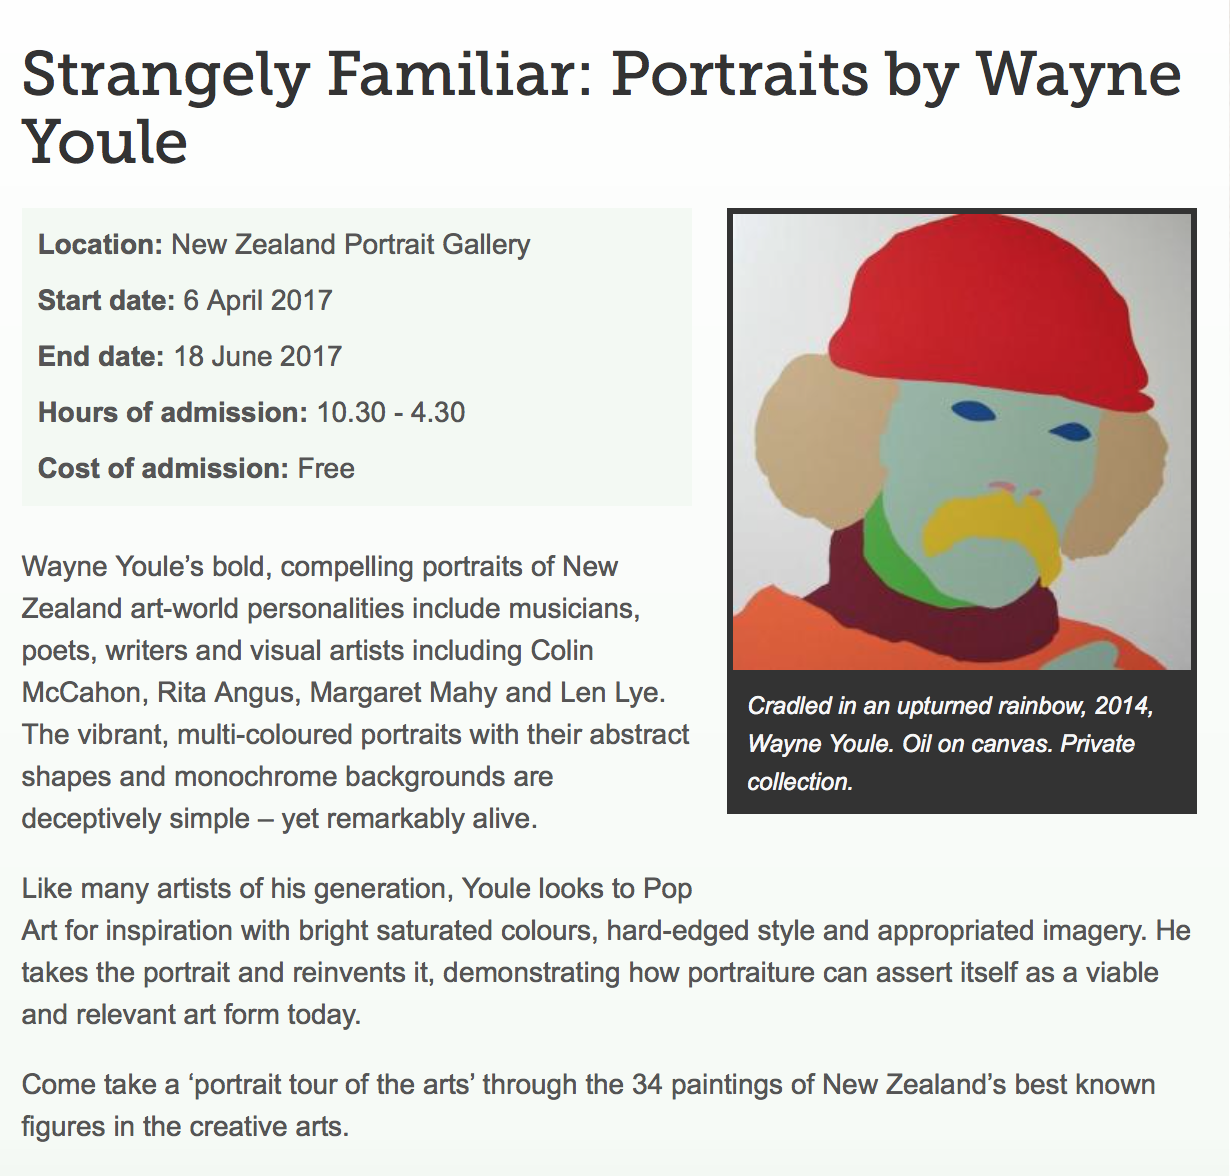 Wayne Youle - Ralph Hotere - Strangely Familiar